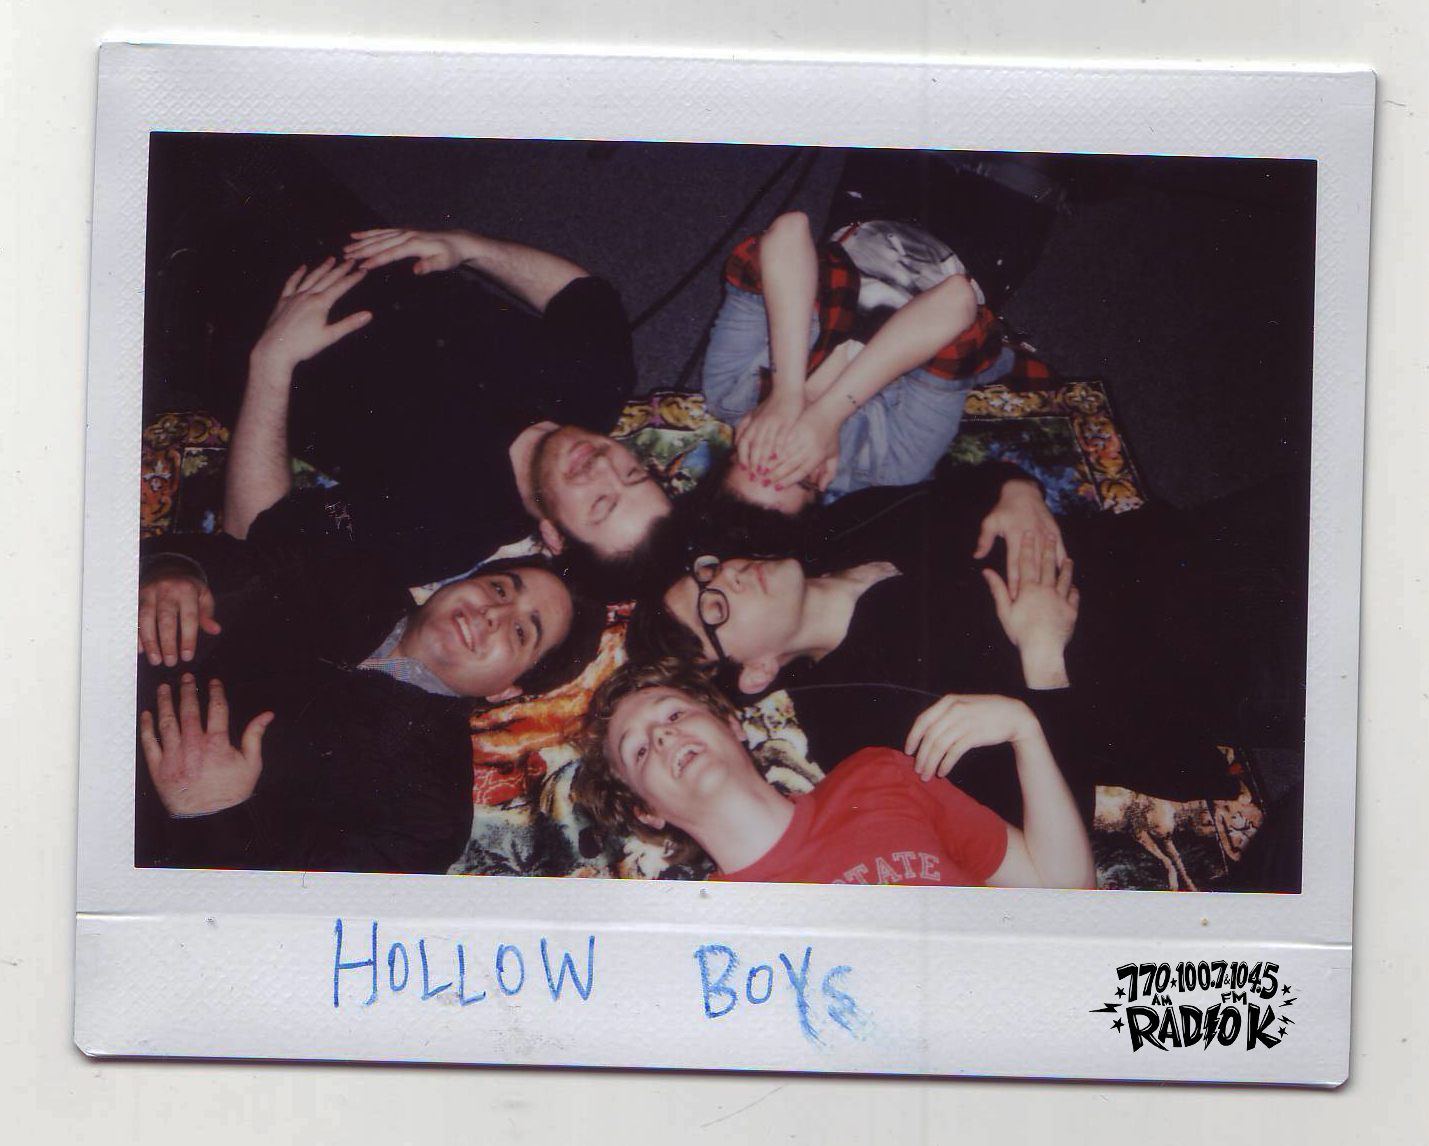 Hollow Boys